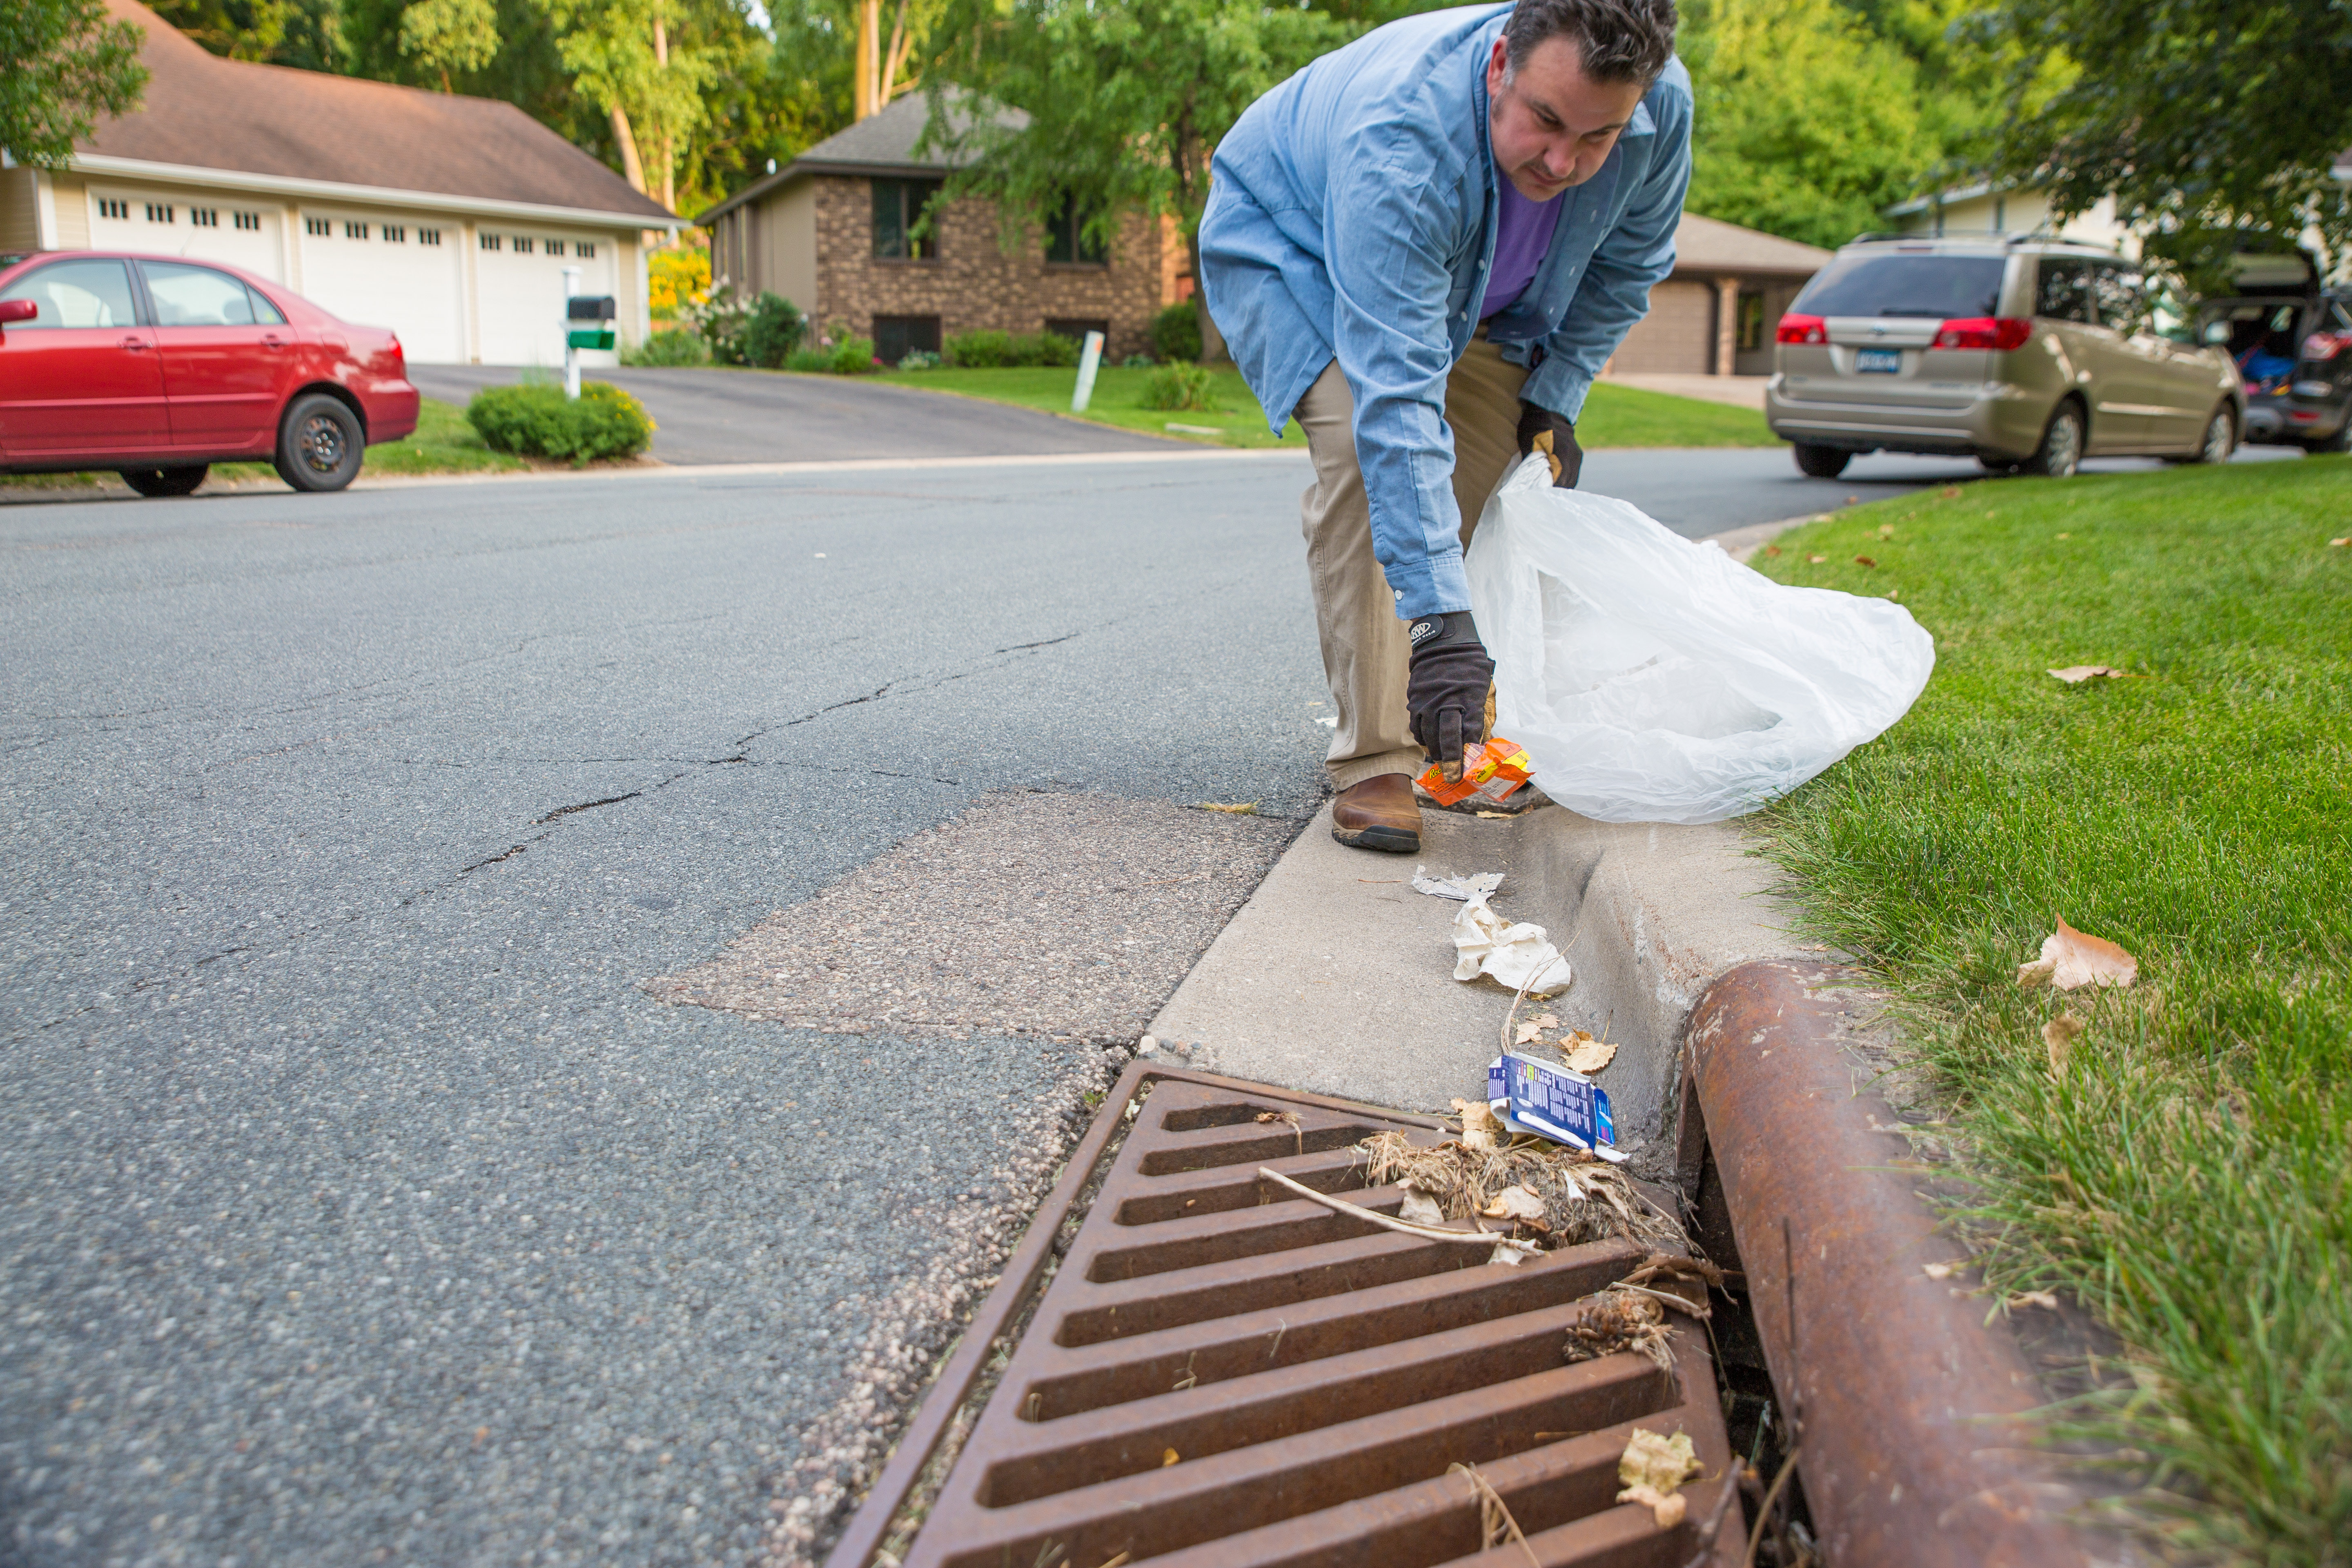 Volunteers 'Adopt-a-Drain' to improve urban stormwater management